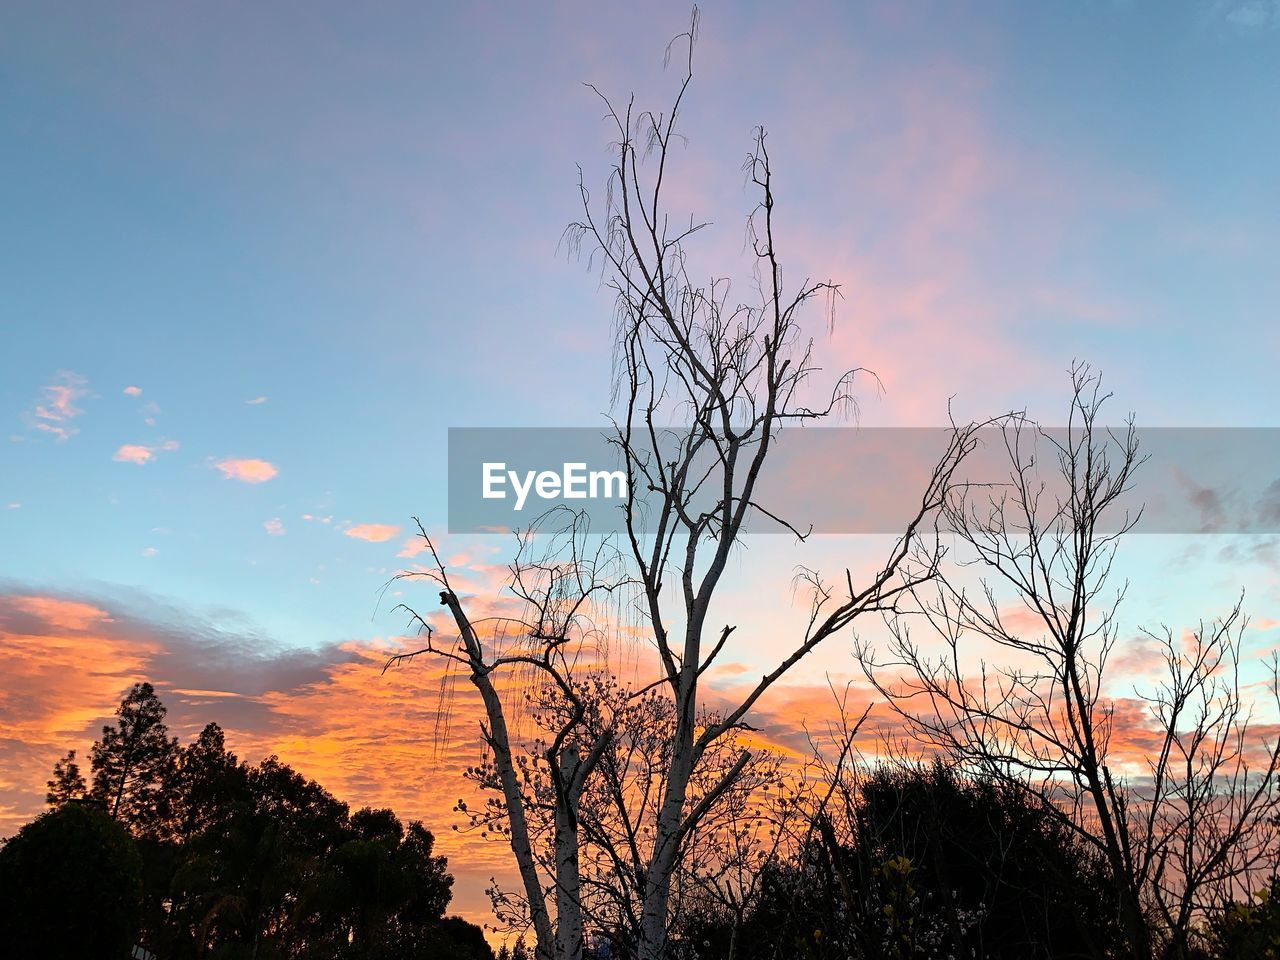 tree, sky, plant, sunset, beauty in nature, silhouette, scenics - nature, tranquility, tranquil scene, cloud - sky, bare tree, no people, branch, nature, non-urban scene, orange color, outdoors, low angle view, growth, environment